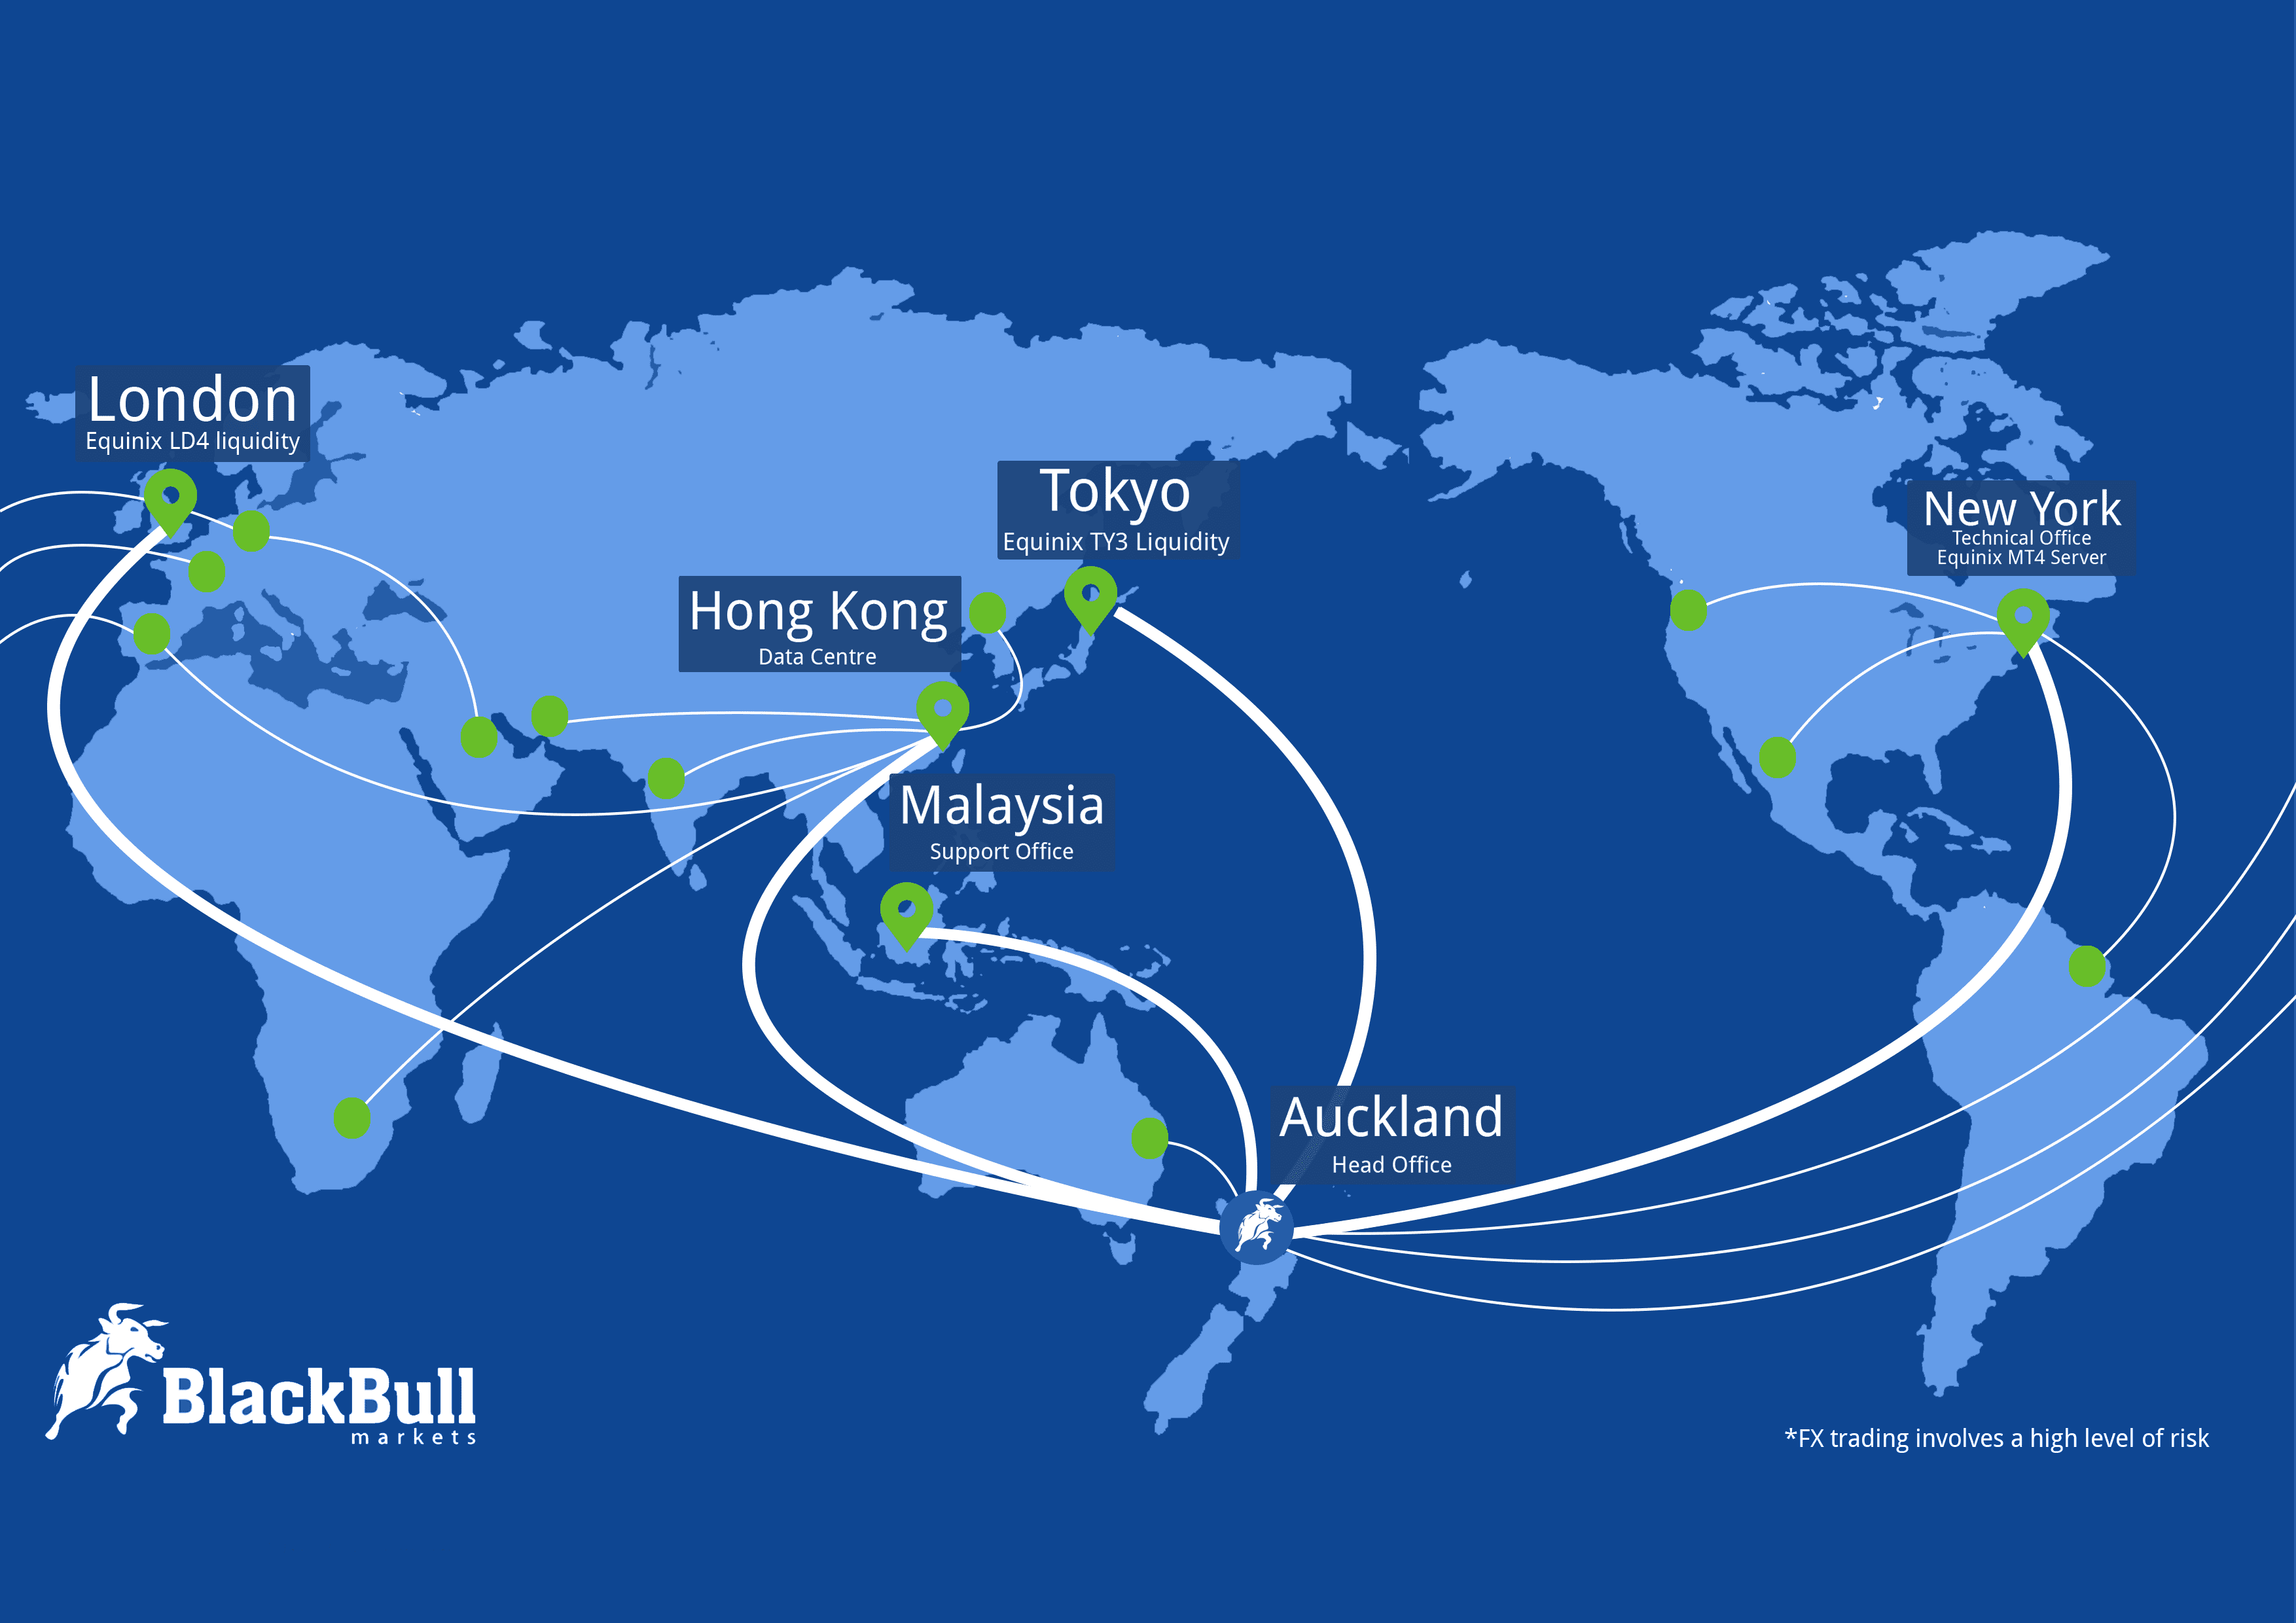 A map of the world that displays the locations of BlackBull Market's offices and servers.